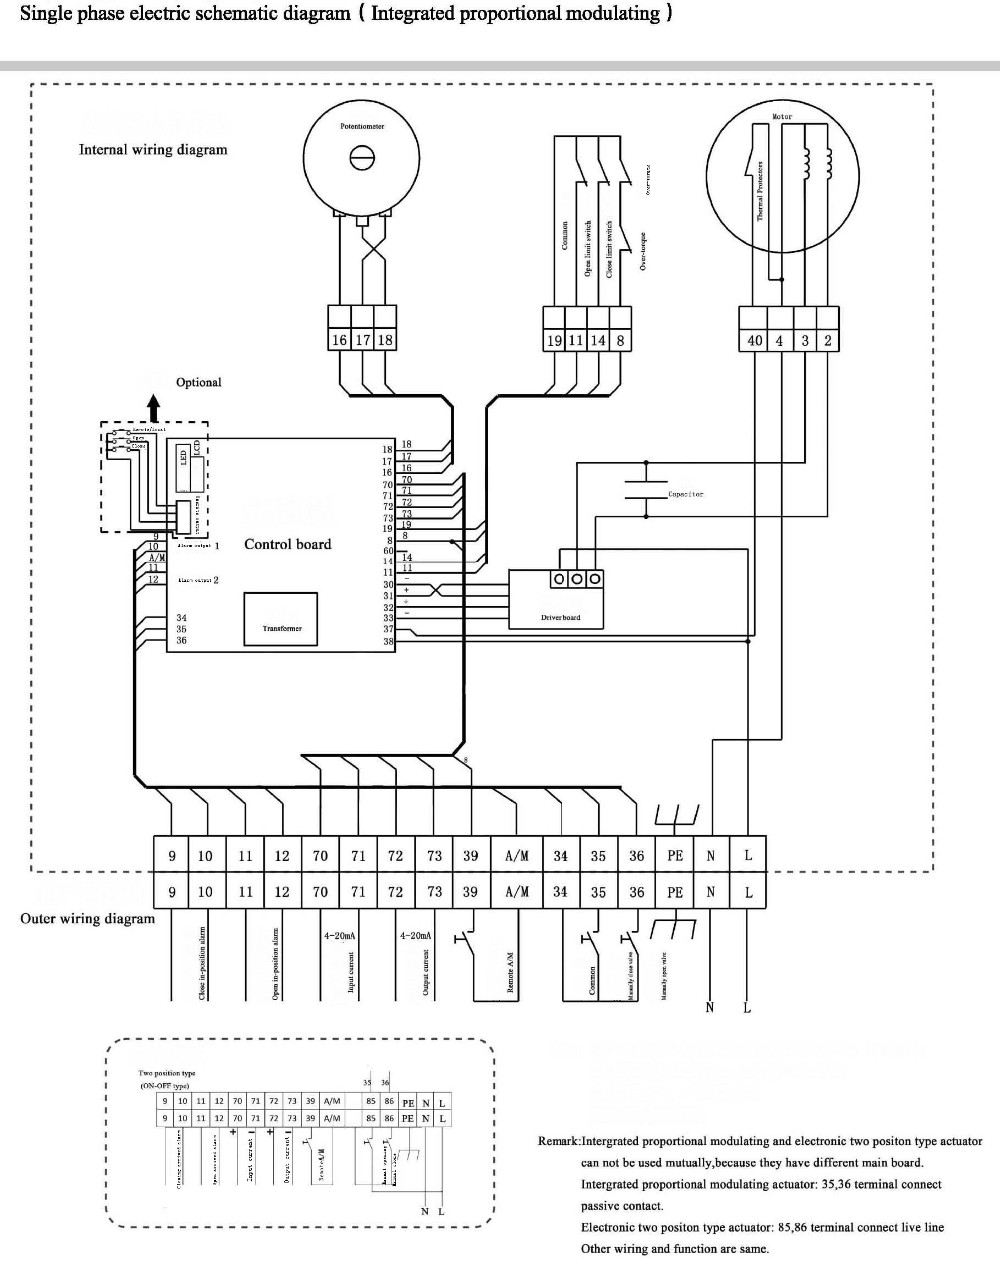 hight resolution of connection diagram of bs 60k30h electric regulating actuator for damper and butterfly valve